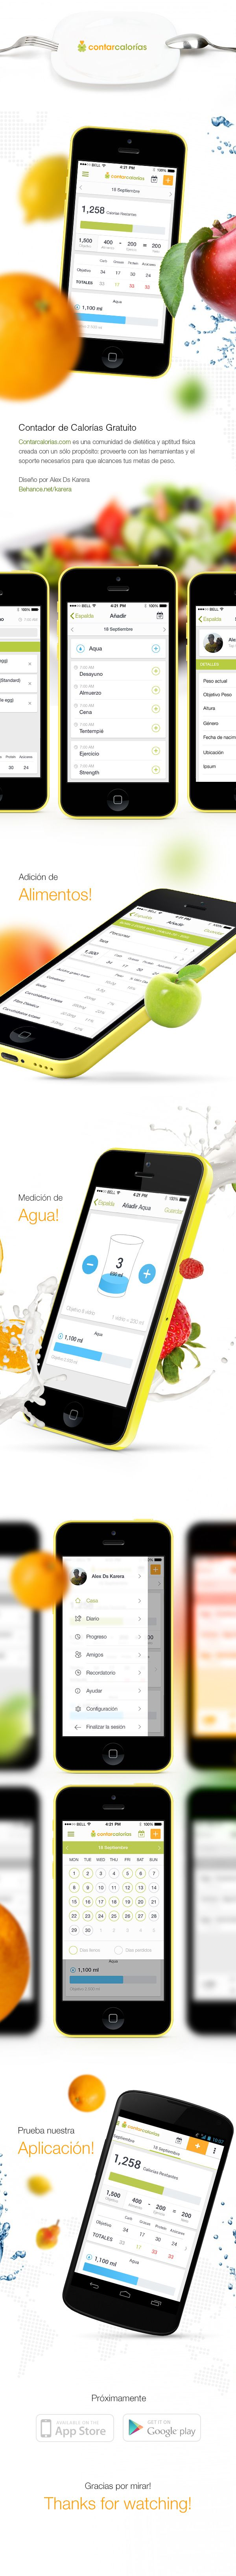 Contar calorias. Fitness application by Alex Ds Karera, via Behance